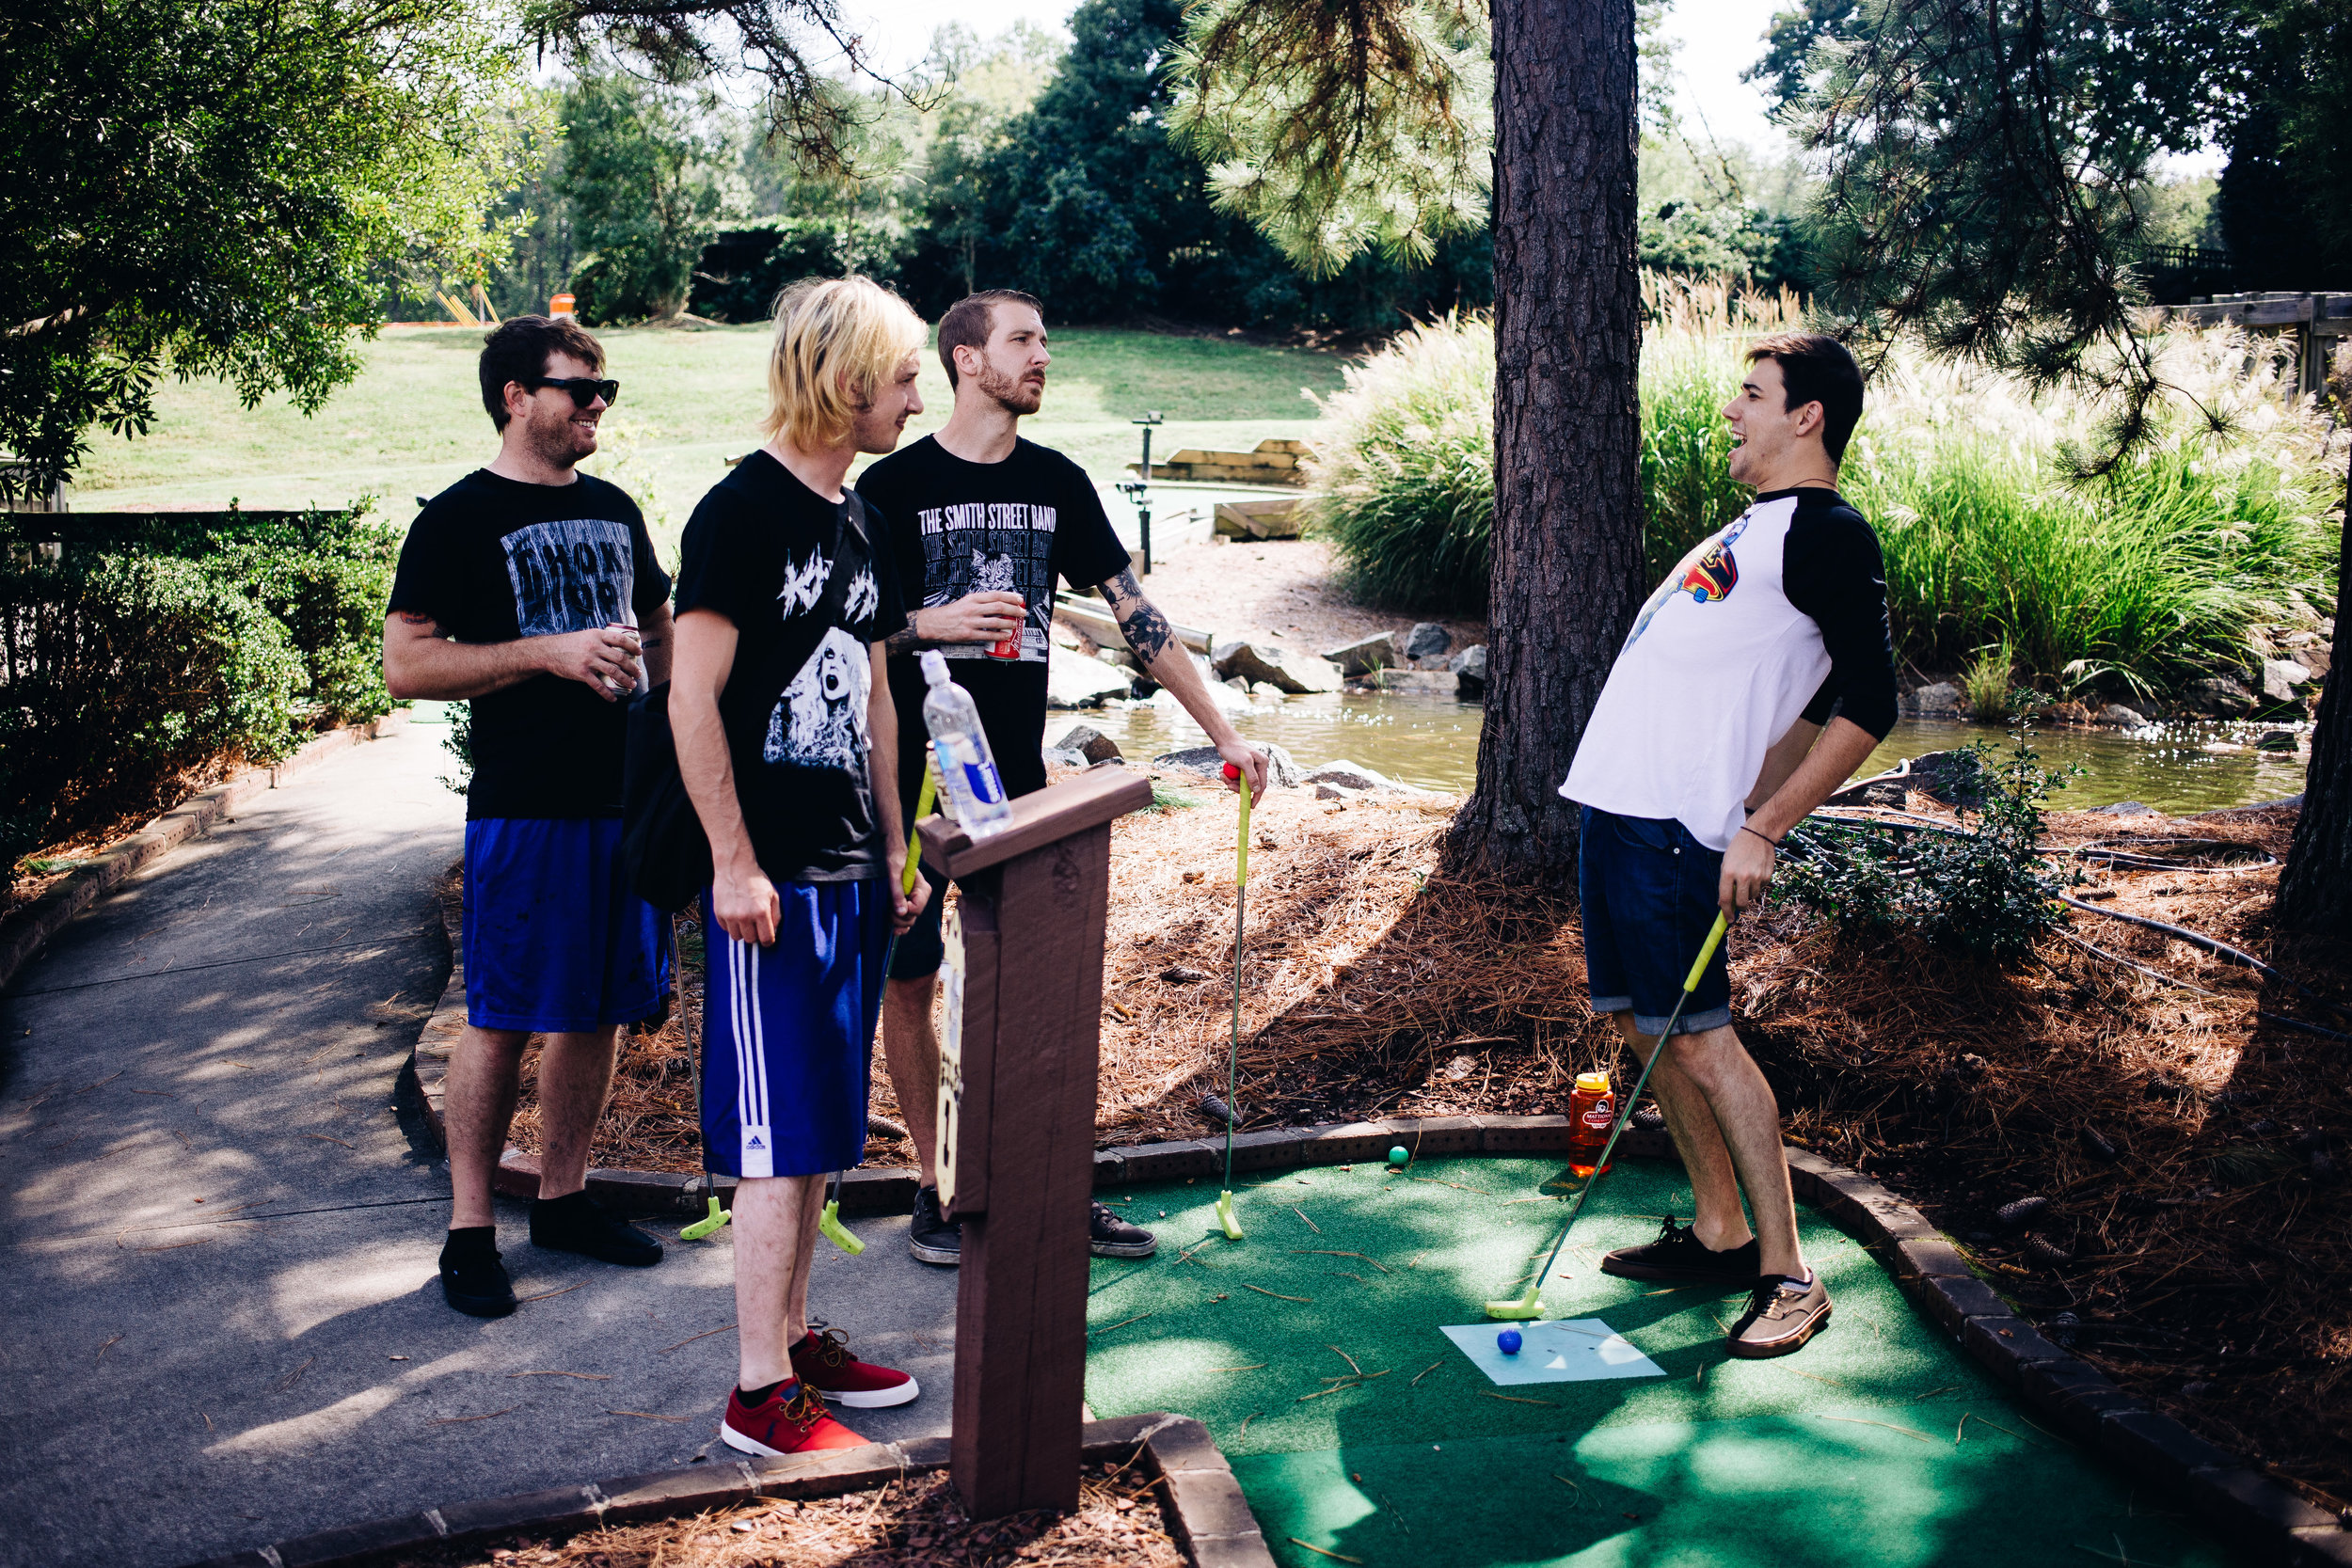 Max approaches the first put on hole one at The Lost Duffer Miniature Golf Course and has strong confidence about his round.